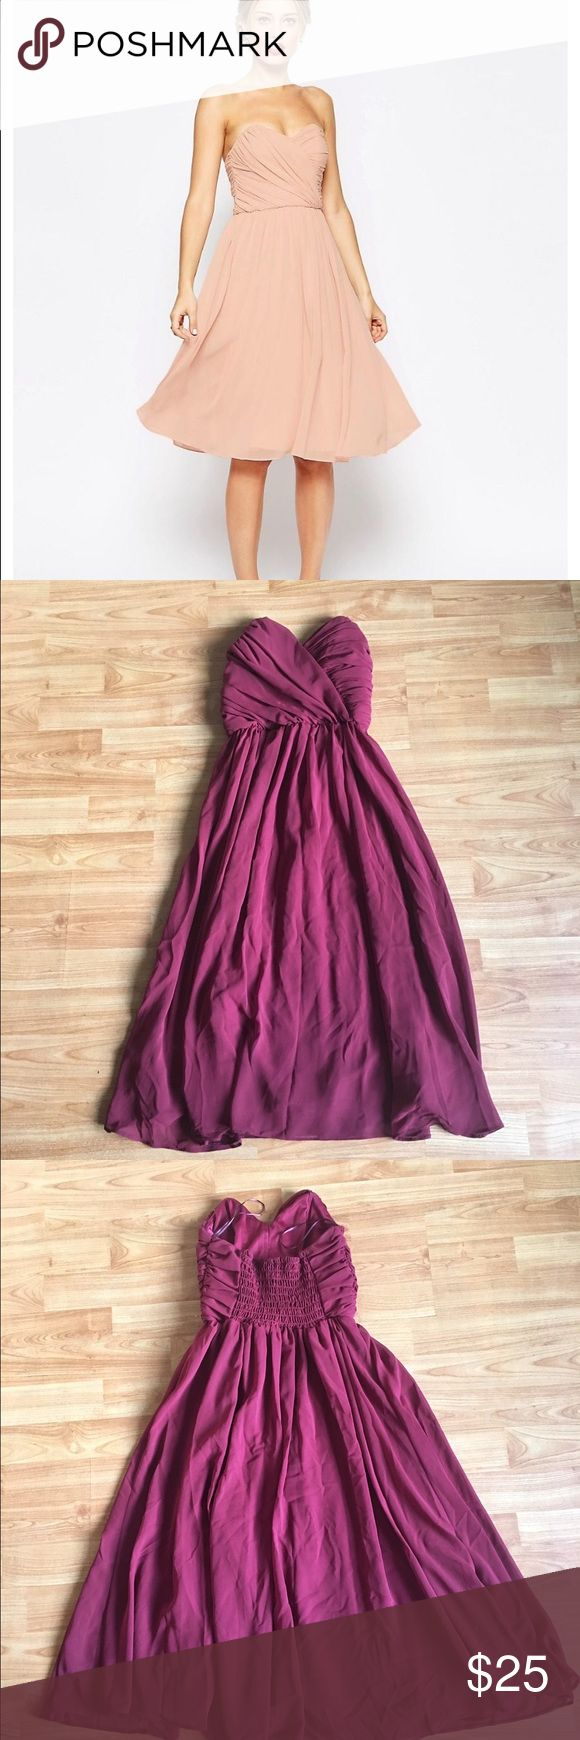 ASOS Formal Dress NWT. Deep wine color, size 2.  Excellent condition.  Bought on here but size was too small.  Same dress that is on the modal just a different color.  If you have any questions, feel free to ask! ASOS Dresses Midi